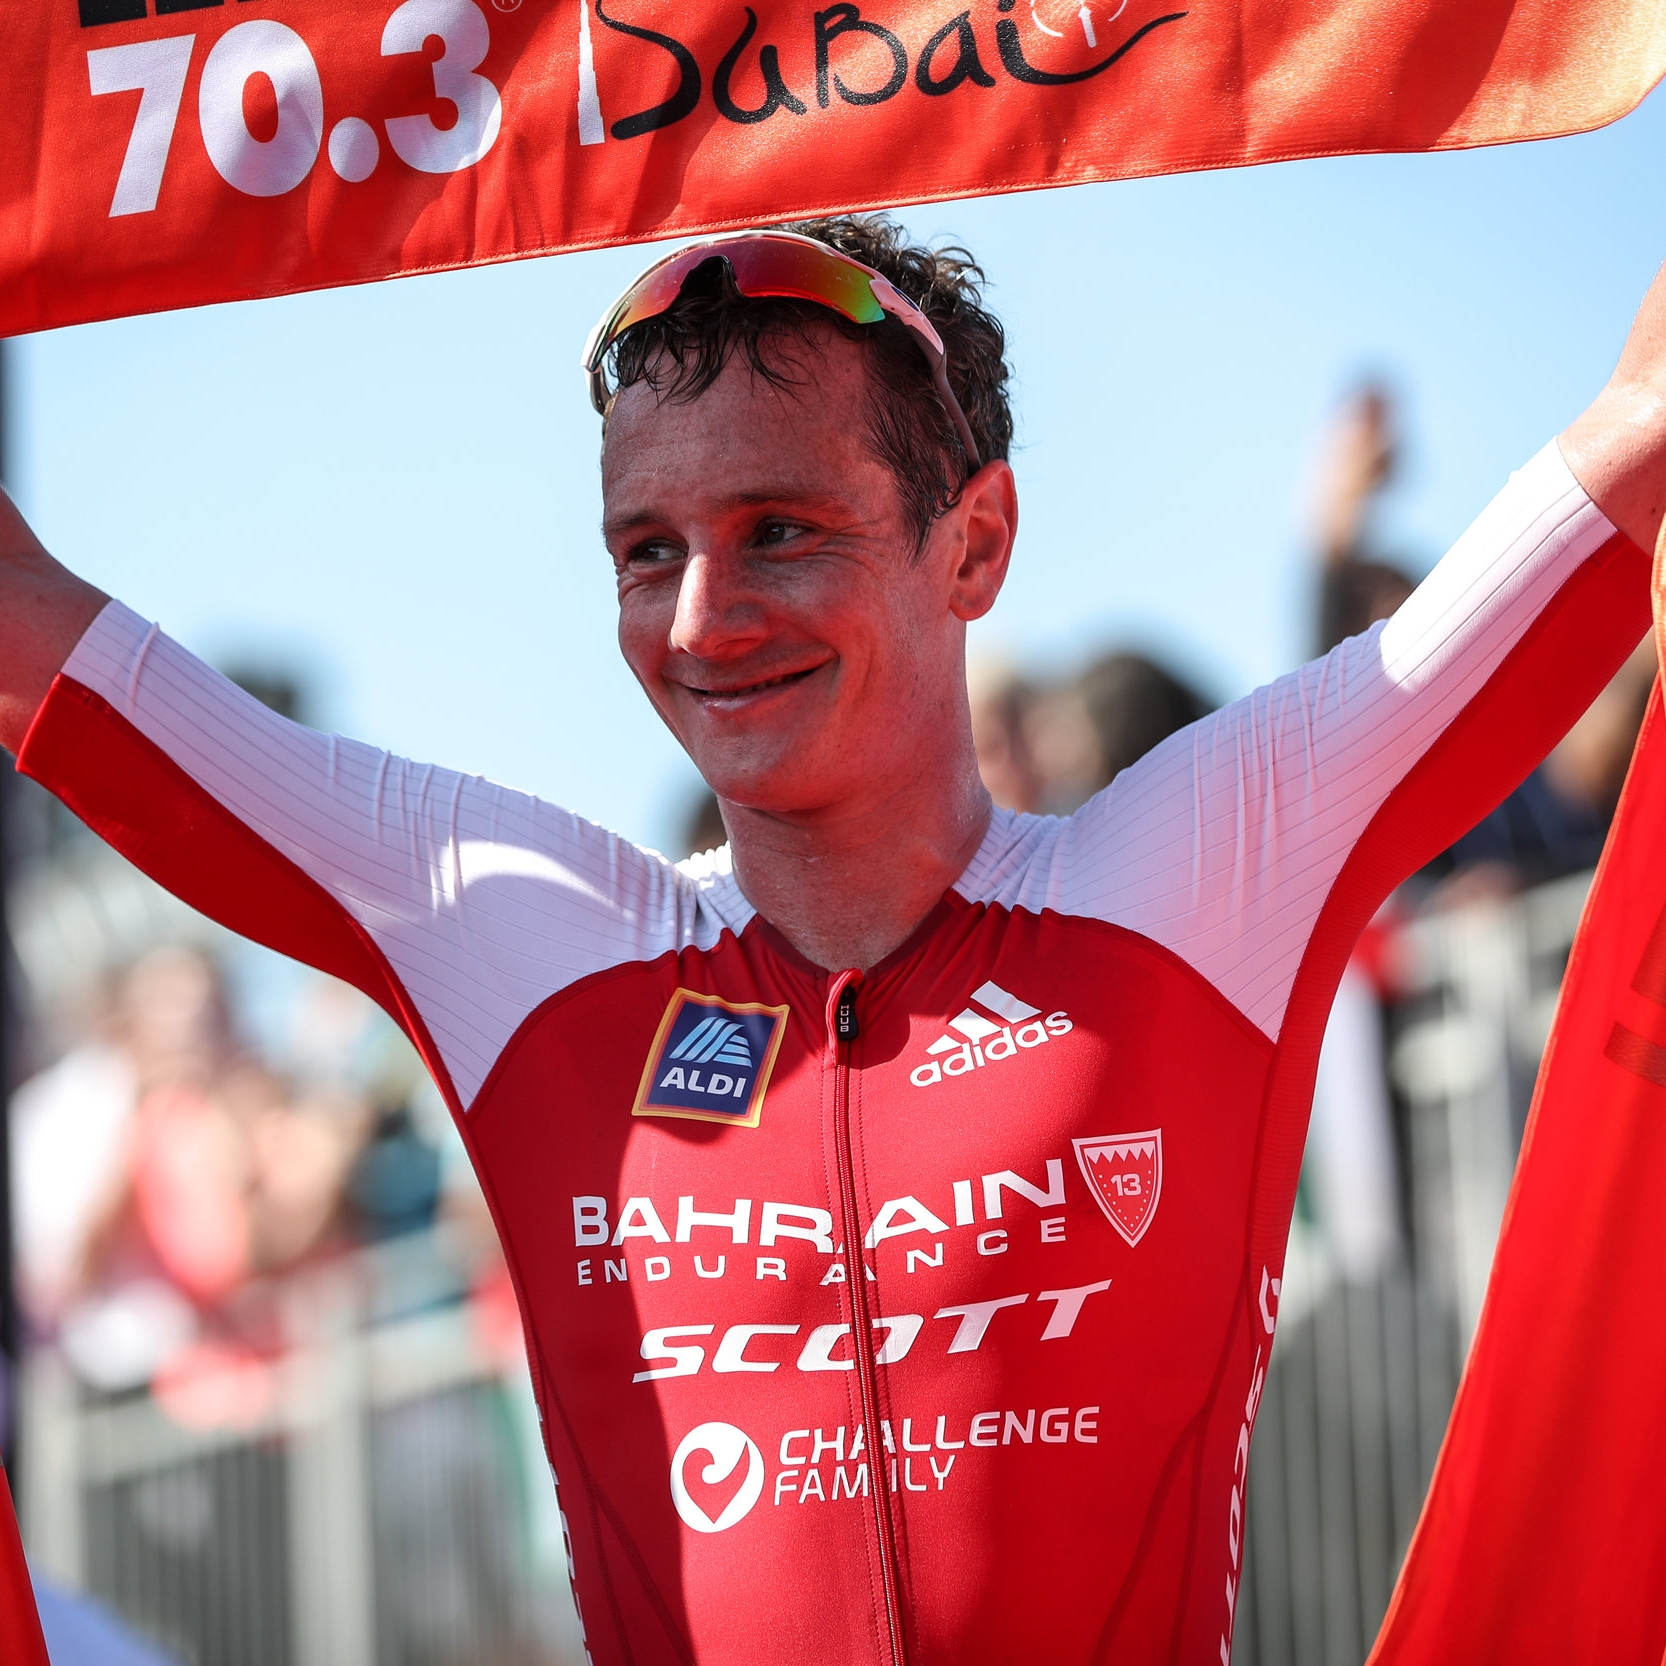 ALISTAIR BROWNLEE   Two-time Olympic gold medalist, two-time ITU World Champion